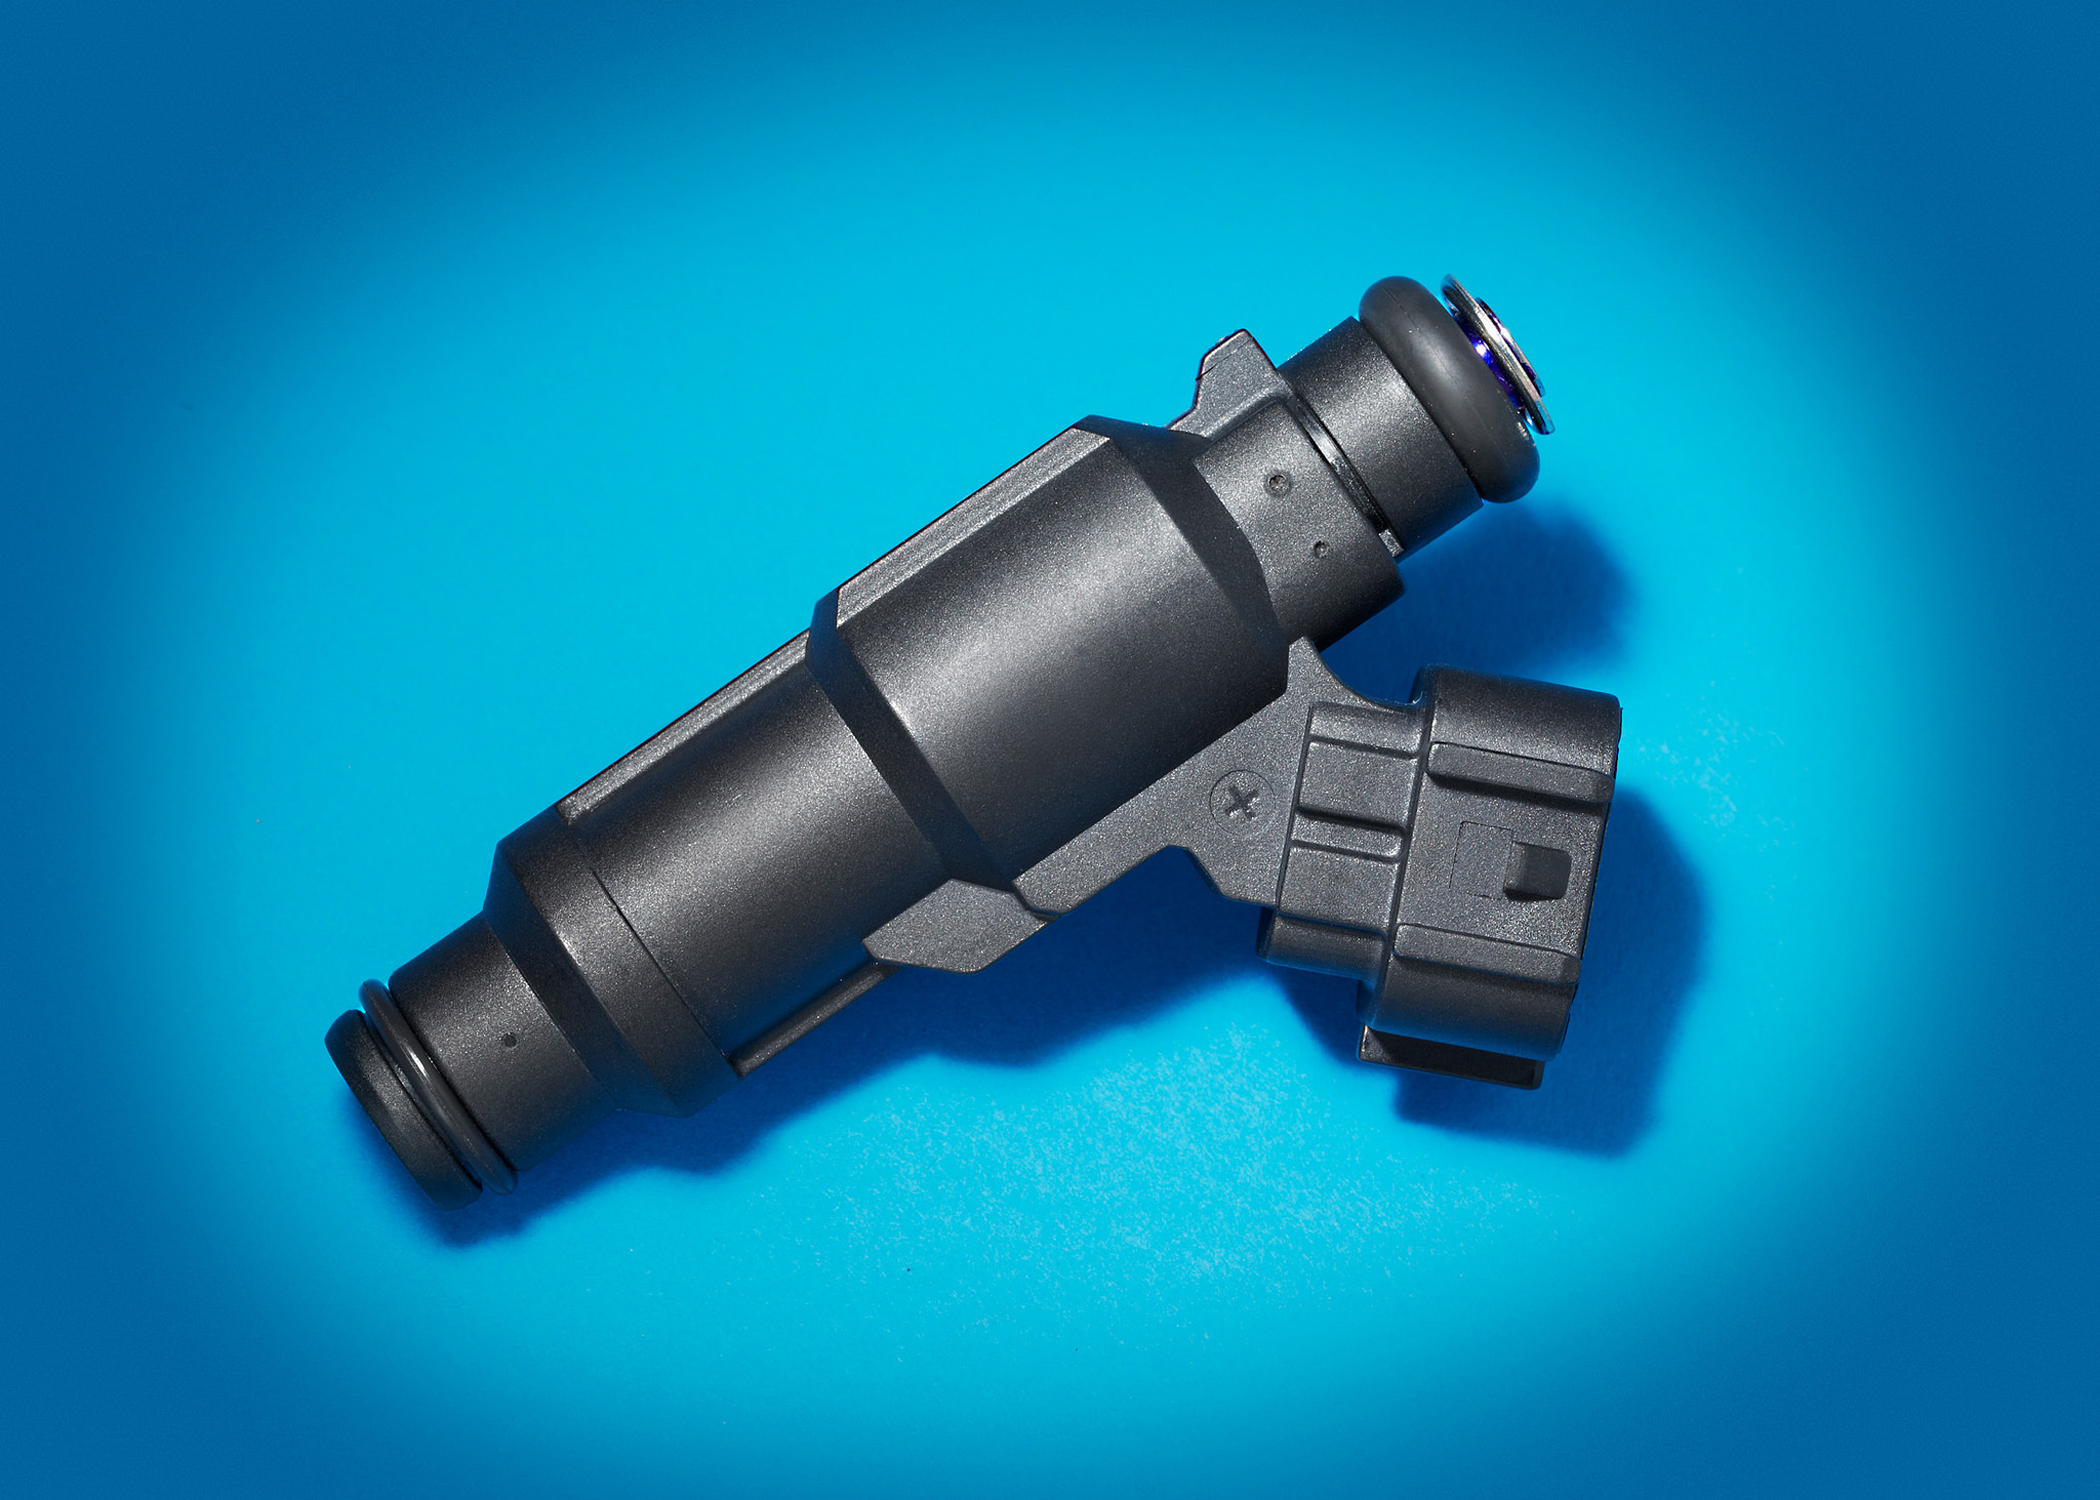 Dupont Heated Tip Fuel Injector